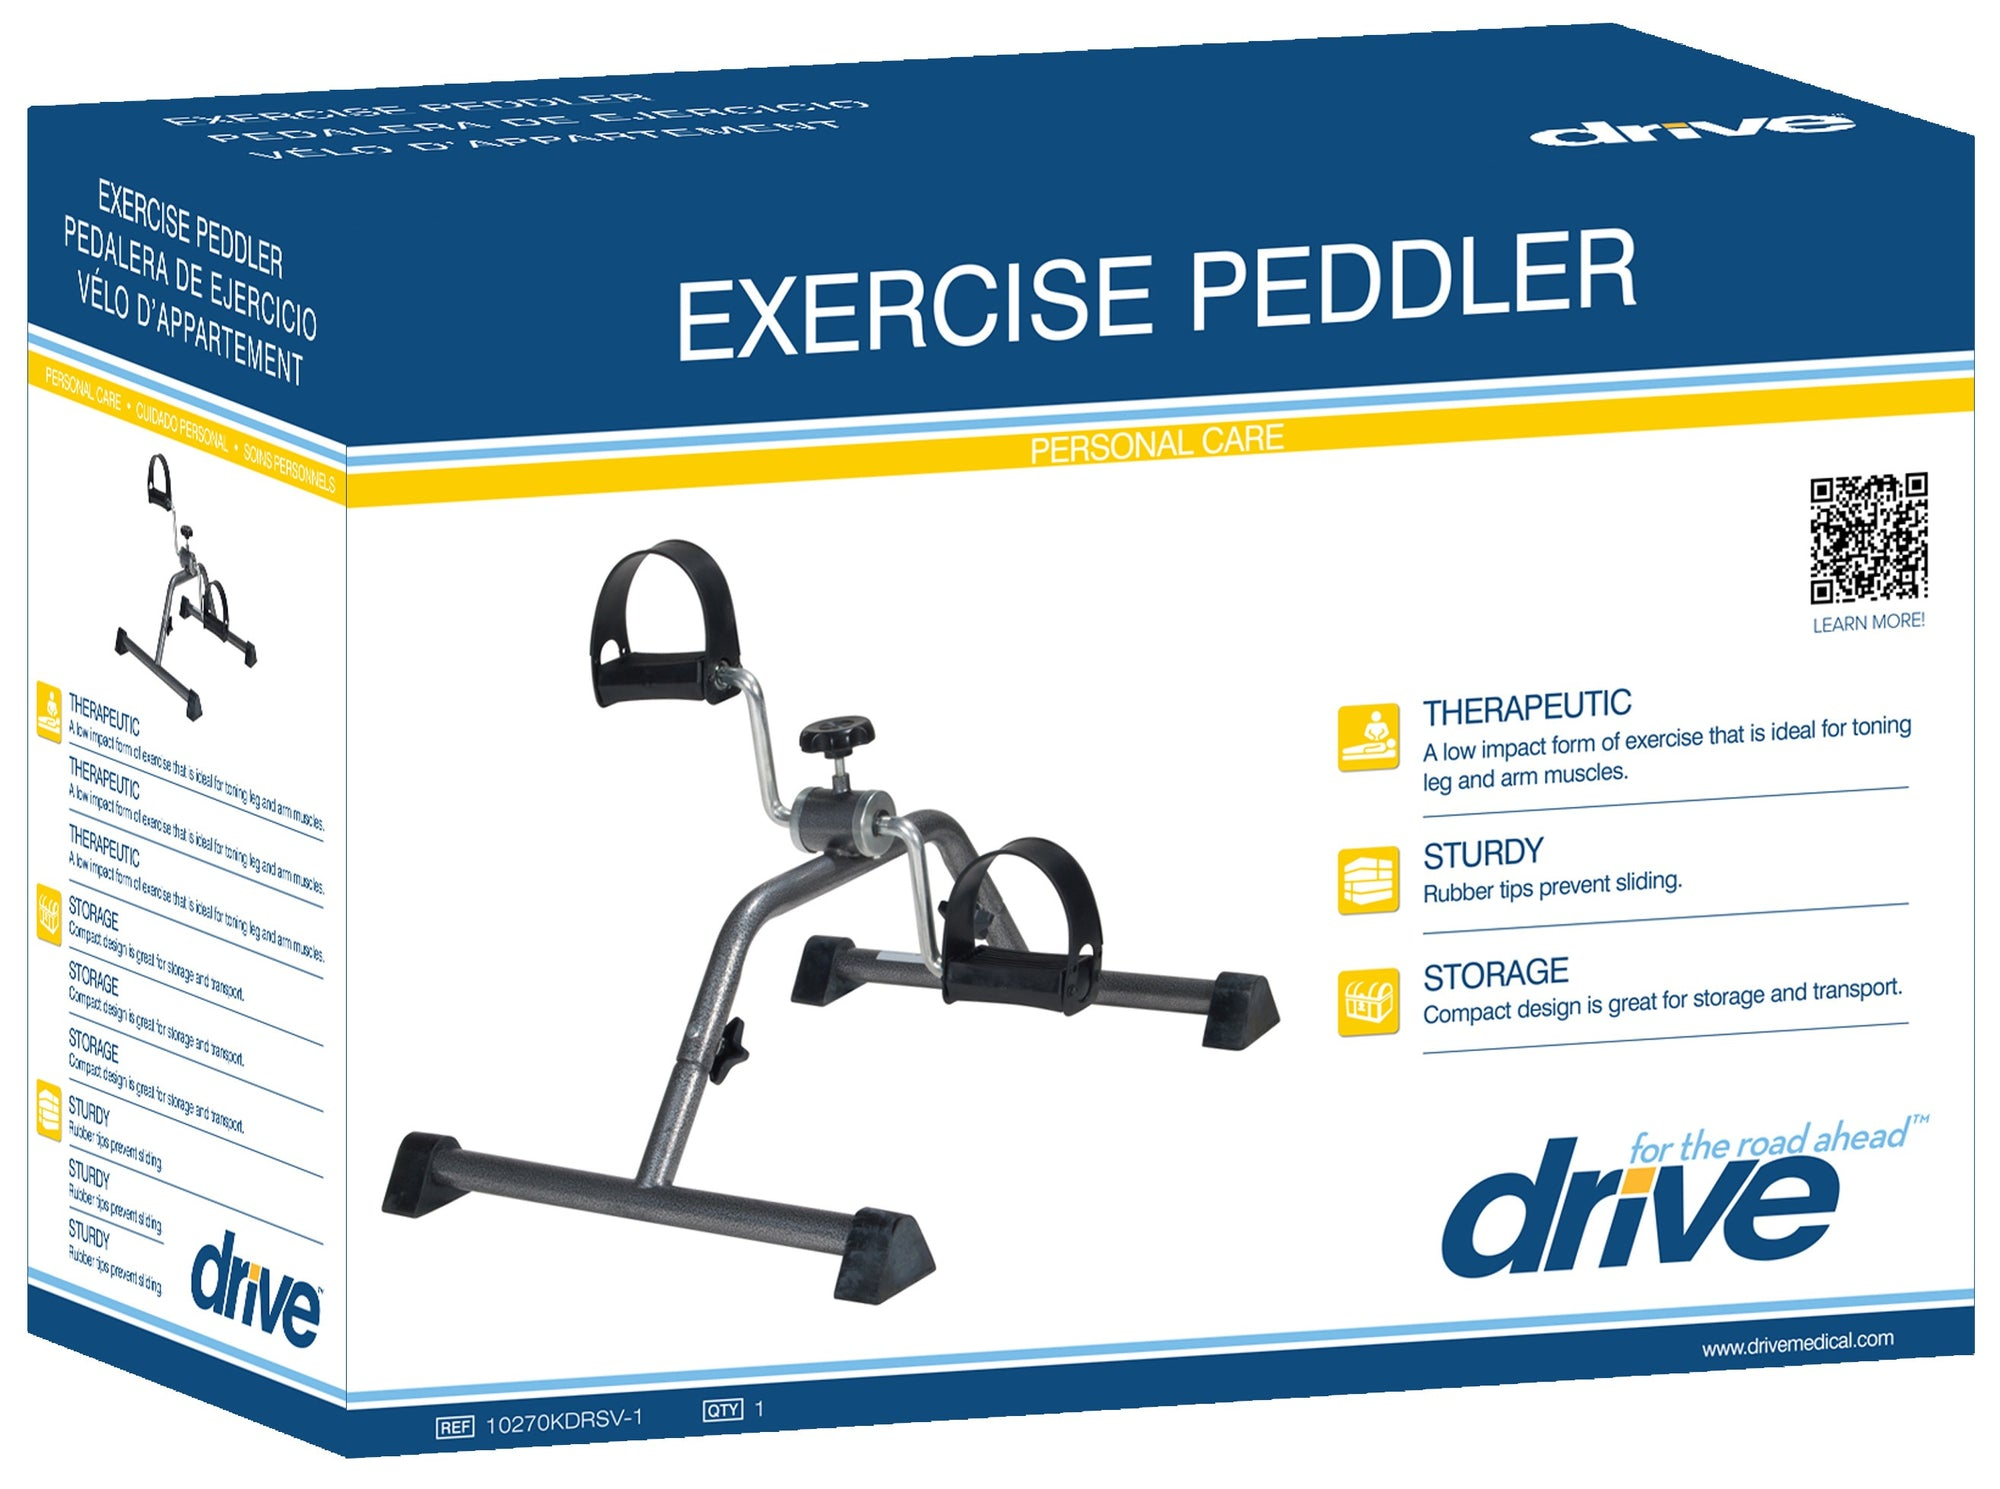 Drive Exercise Peddler Just Walkers